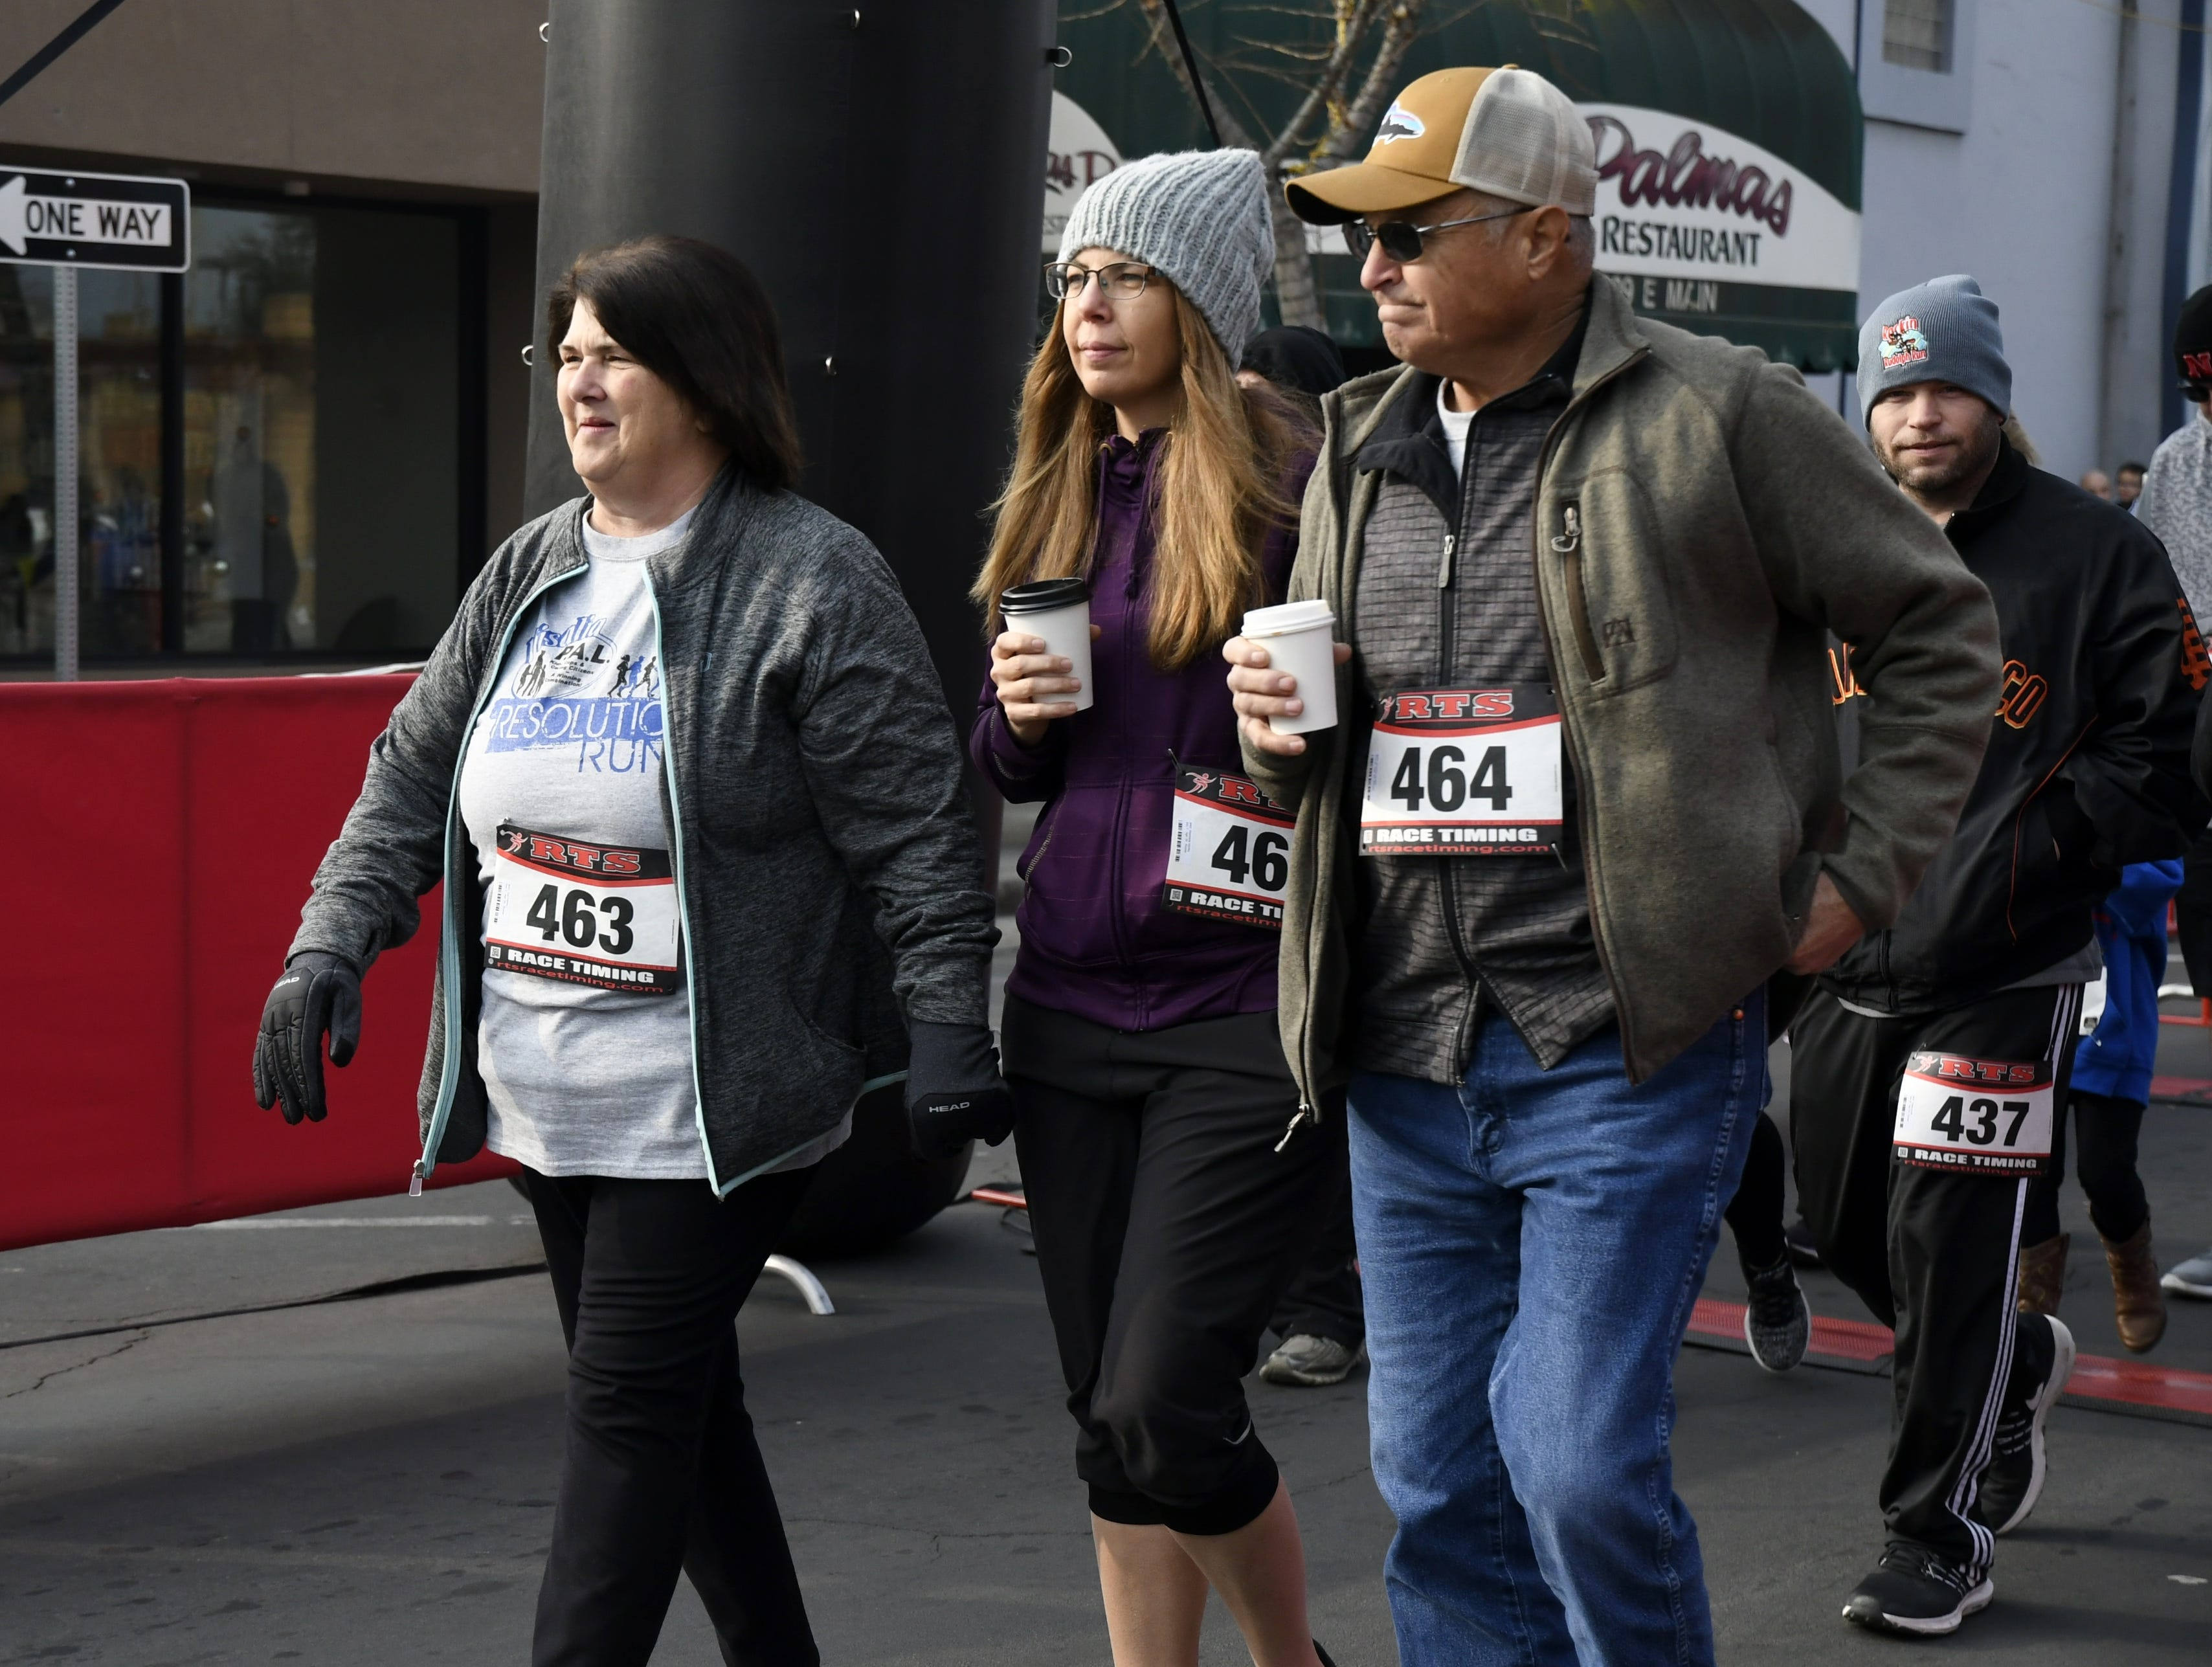 More than 330 runners took to the streets of downtown Visalia for the third annual Visalia PAL Resolution Race on Tuesday, January 1, 2019.